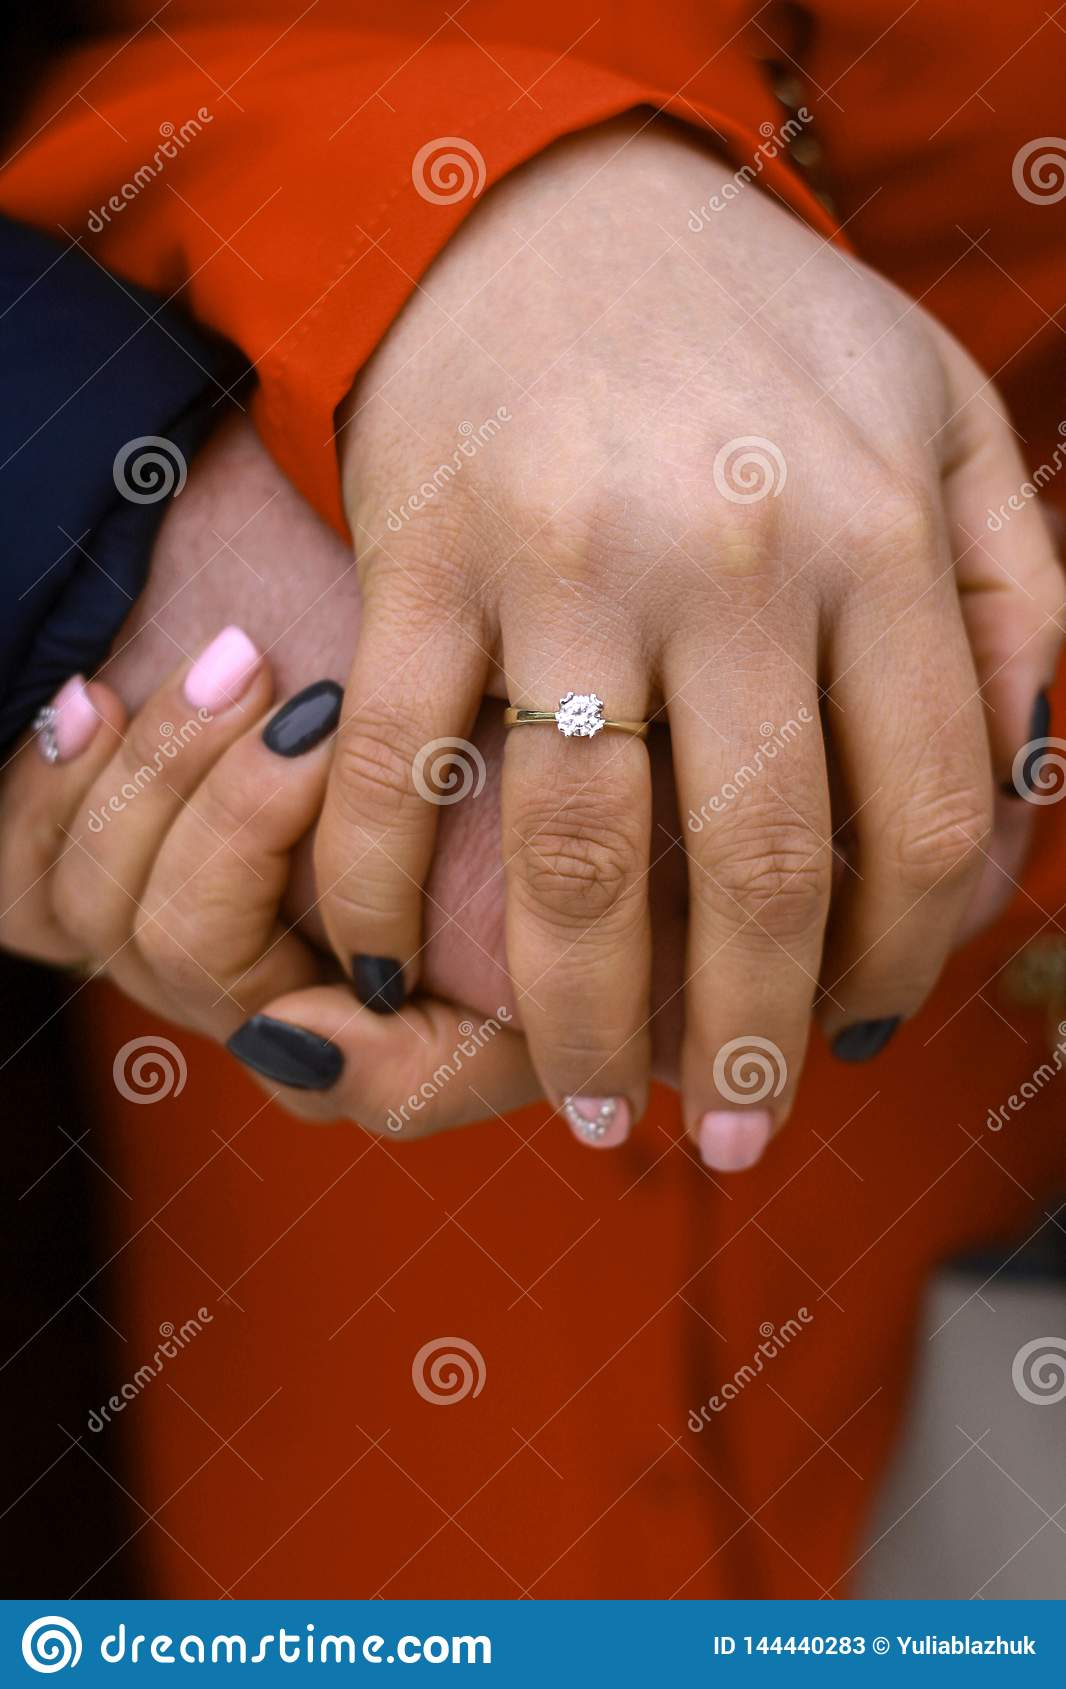 Picture of man and woman hands with wedding ring